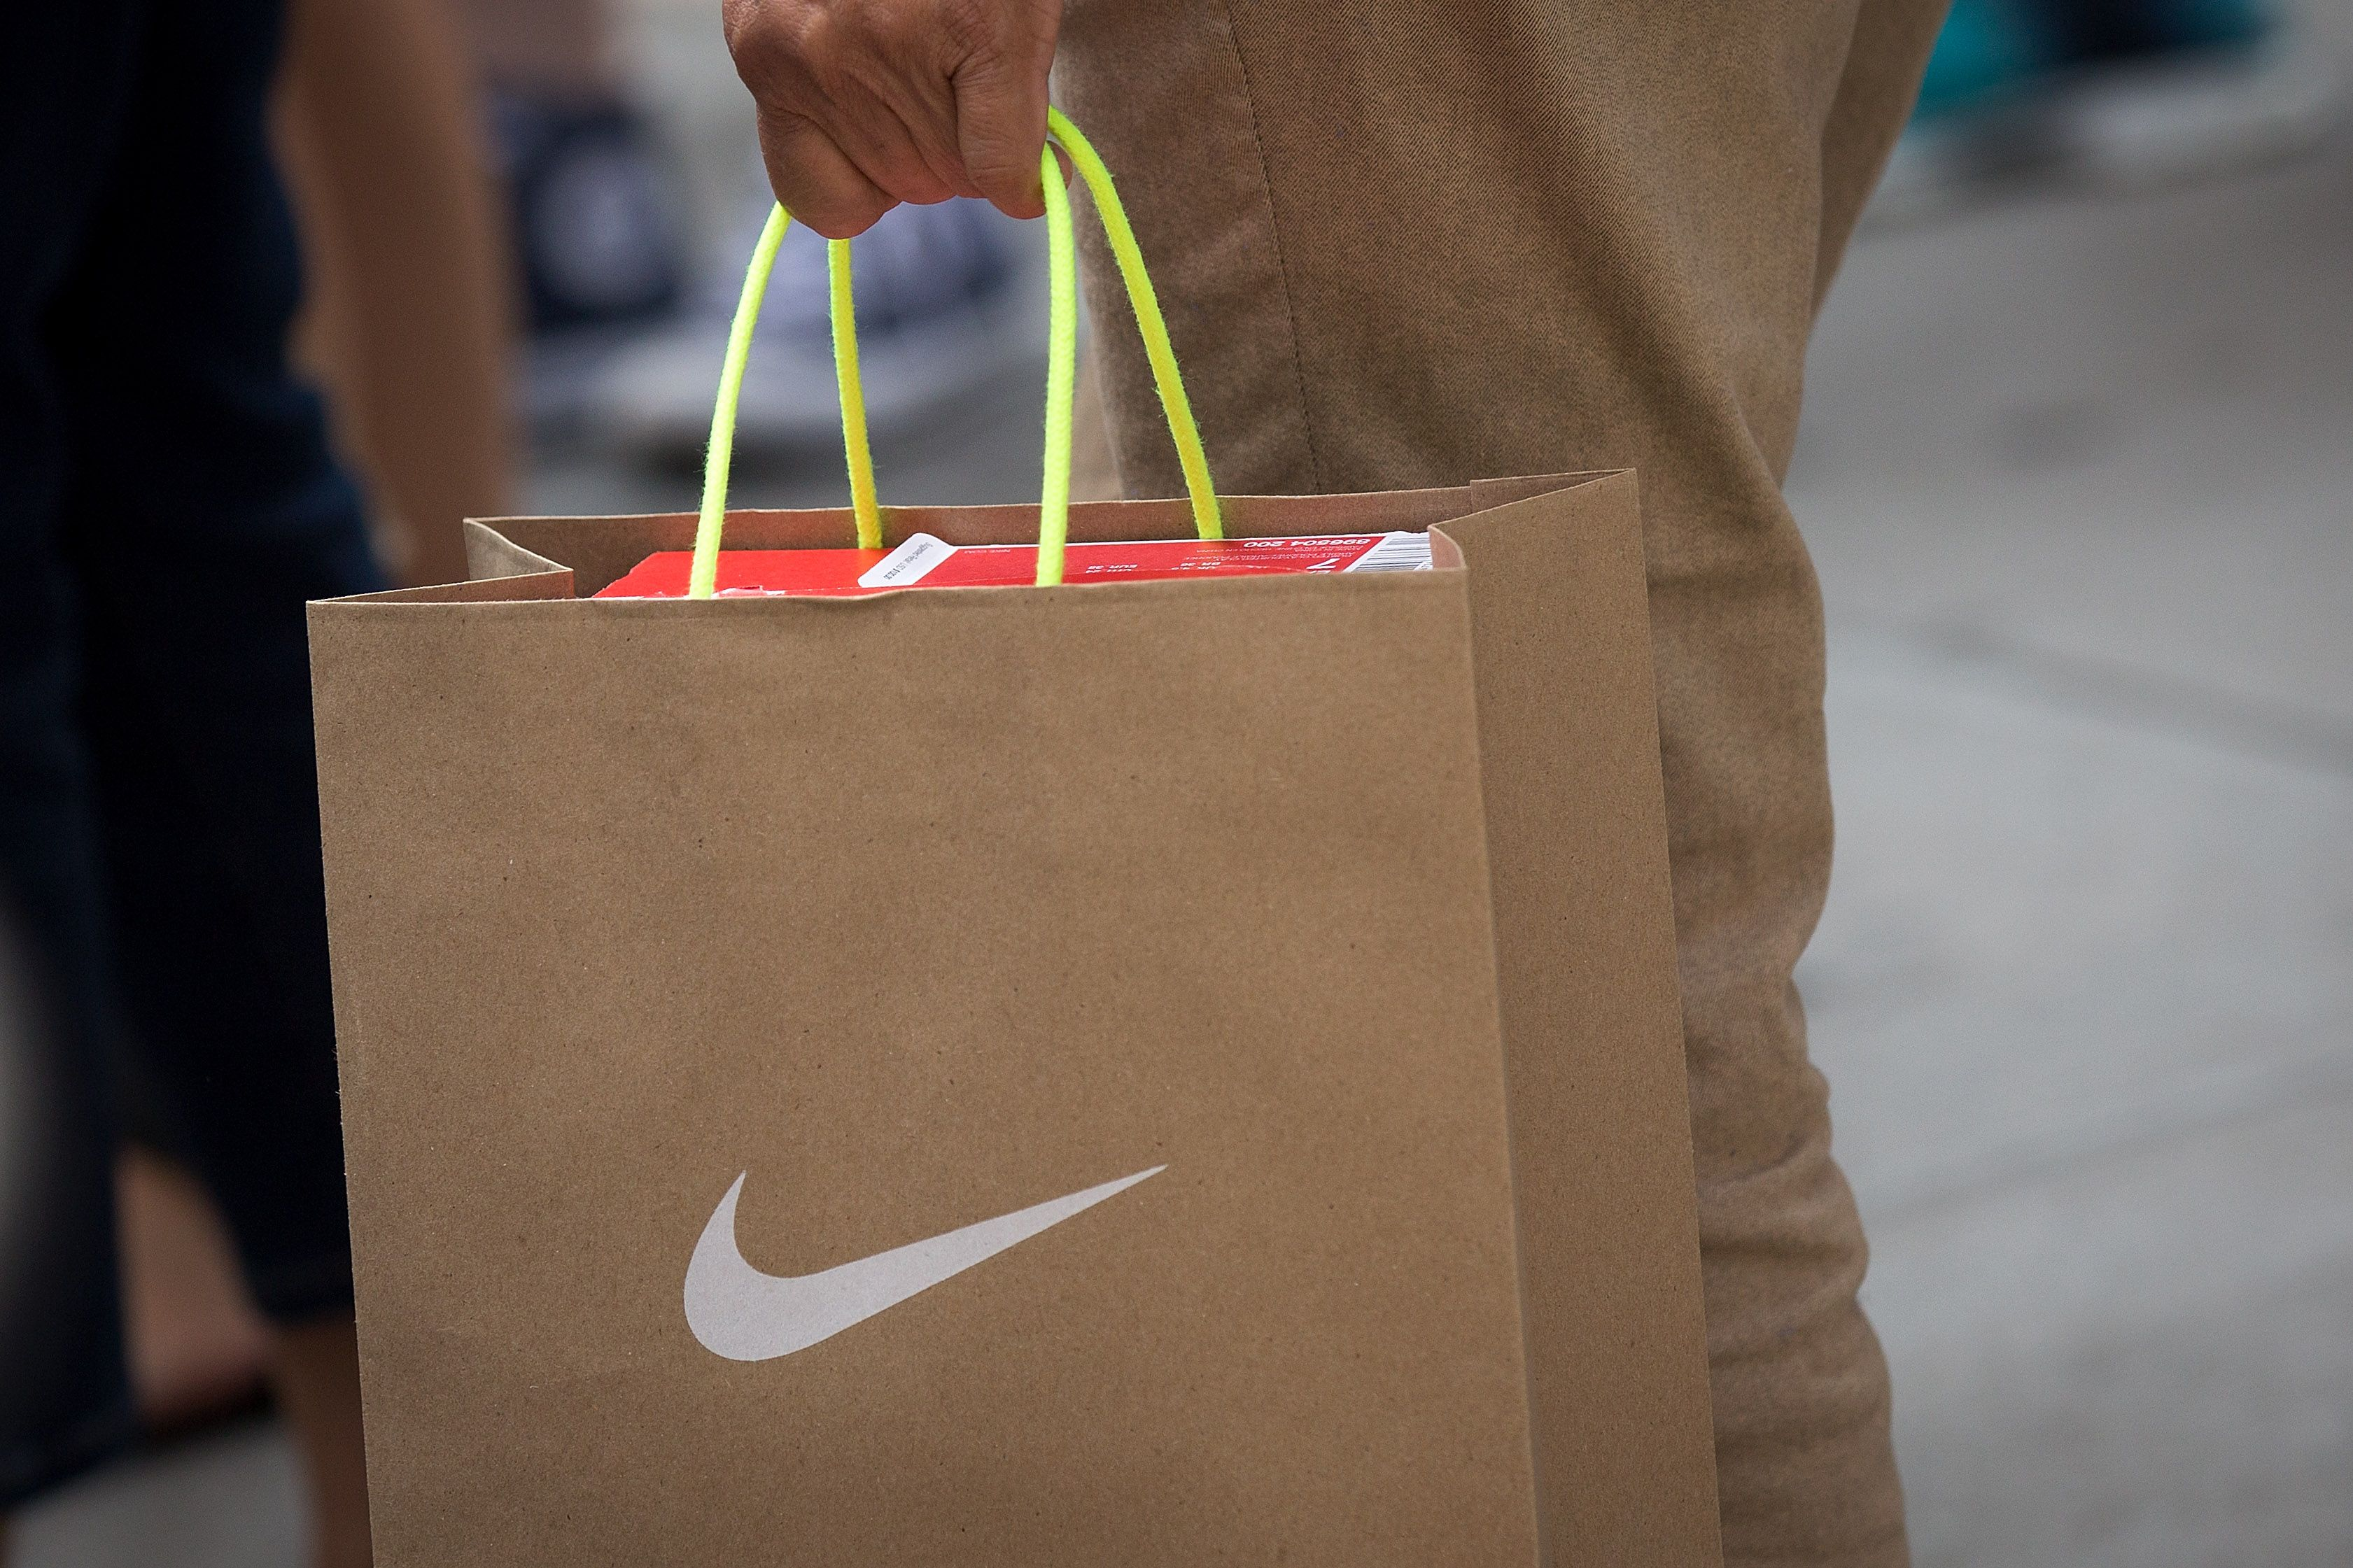 Nike's Black Friday sale 2019: what discounts and deals to